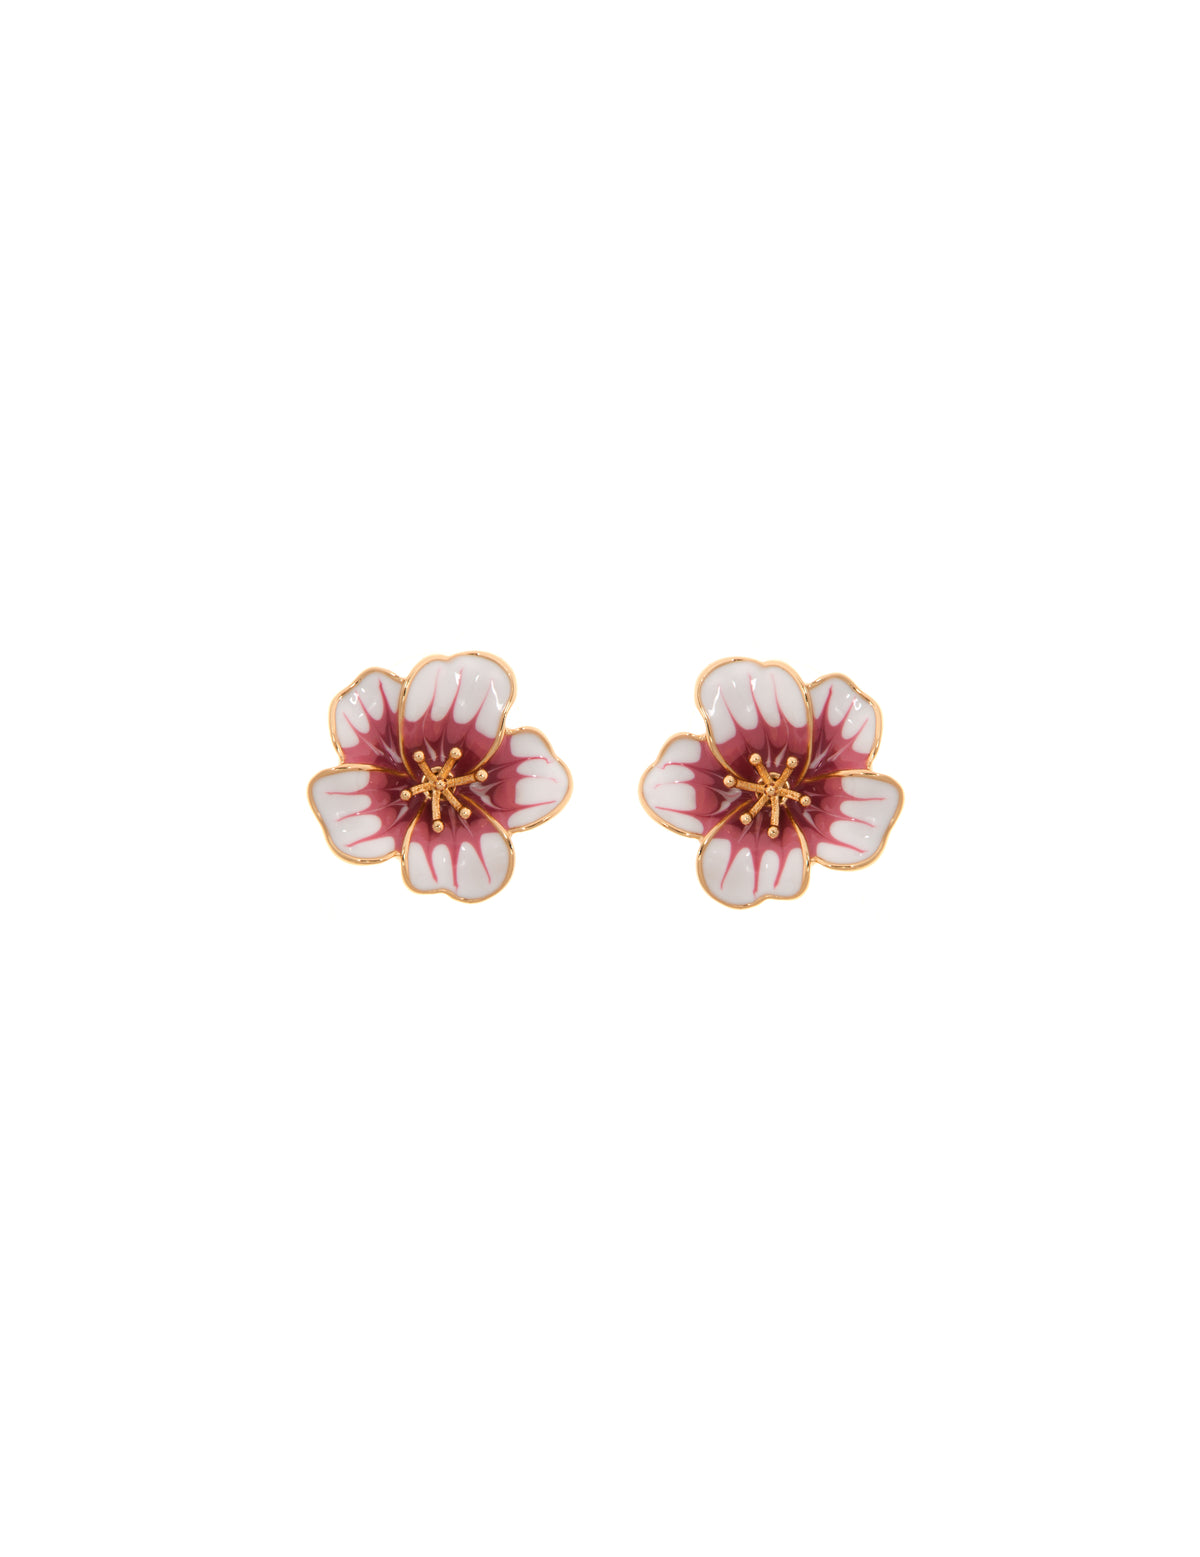 Gold-Tone Flower Earrings & Mask Set